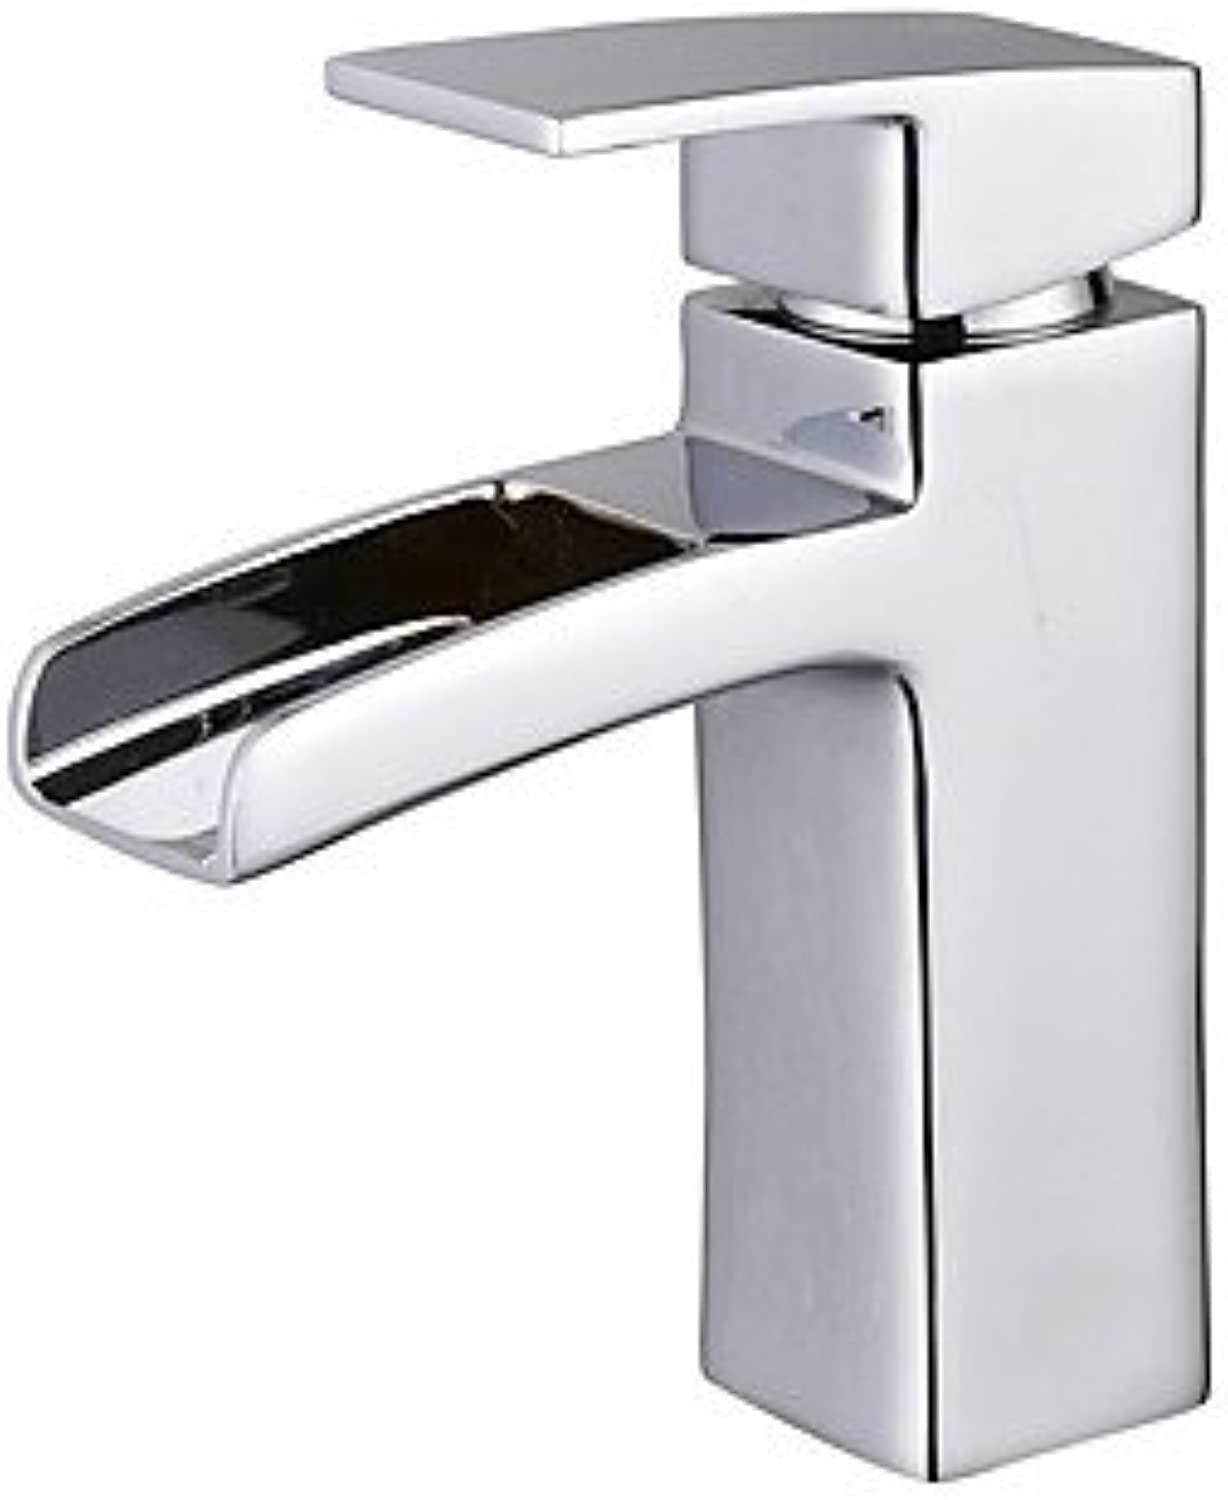 TSAR003 Traditional Style Deck Mounted Waterfall With Ceramic Valve Single Handle One Hole For Chrome Bathroom Sink Faucet